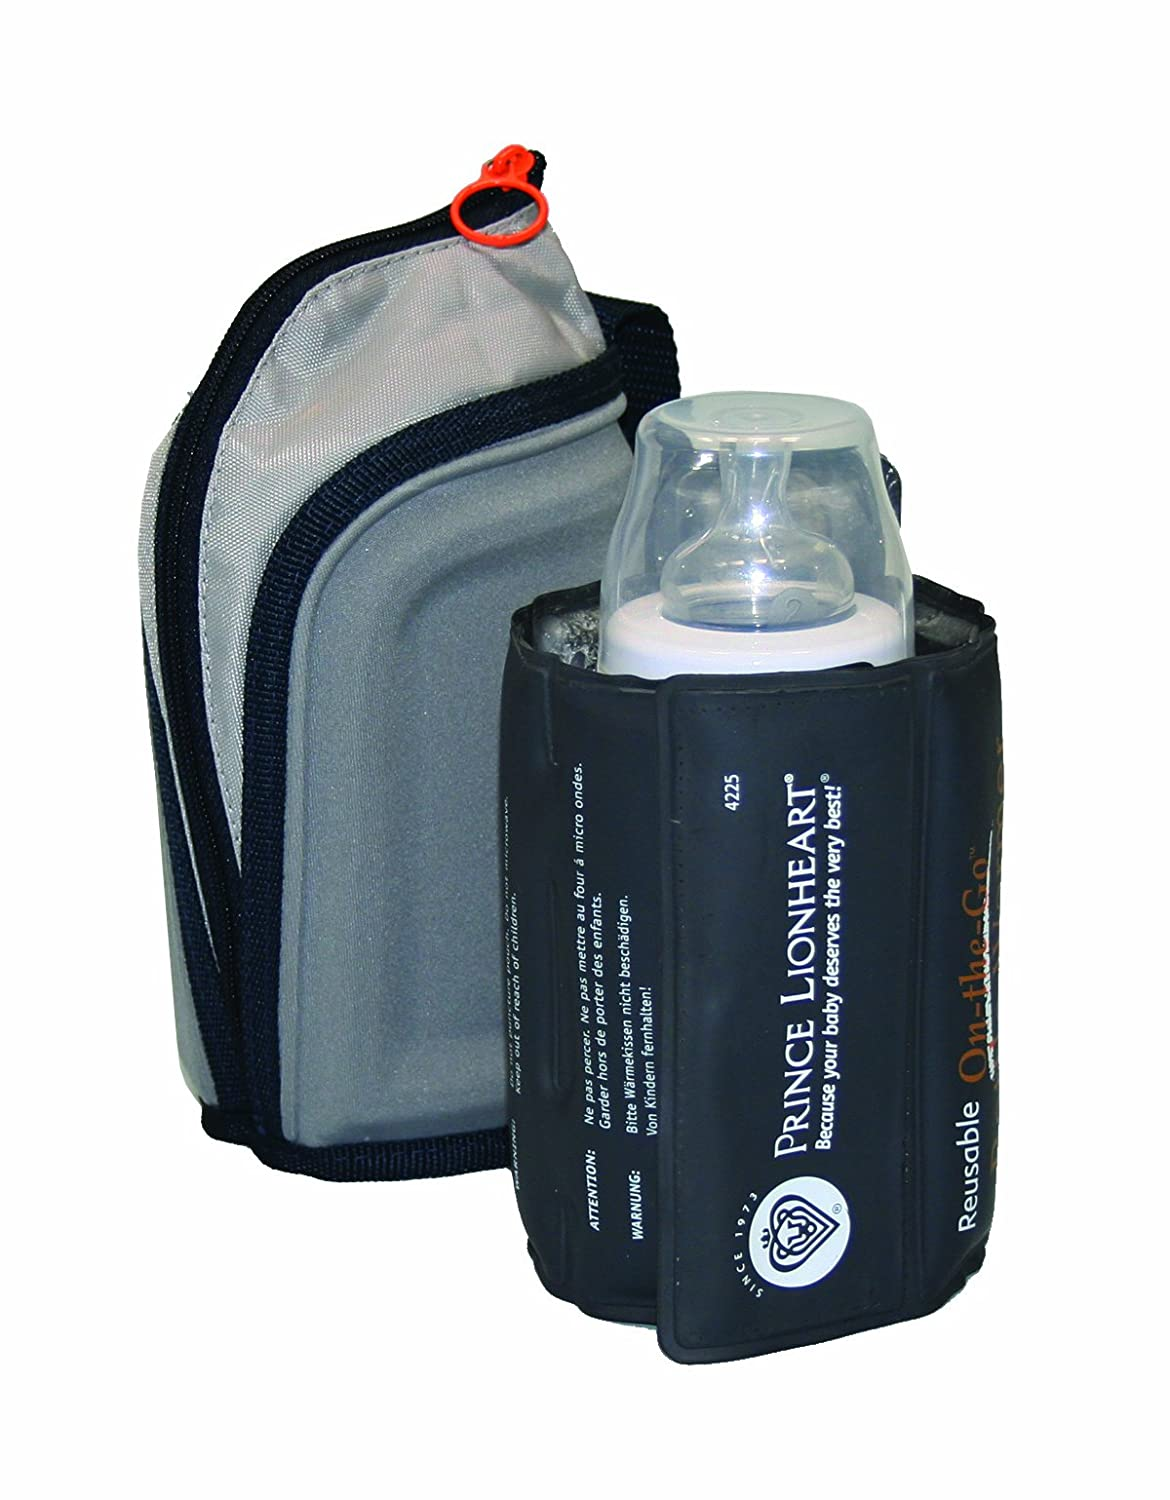 Prince Lionheart Reusable On The Go Bottle Warmer (2 Pack) 4226